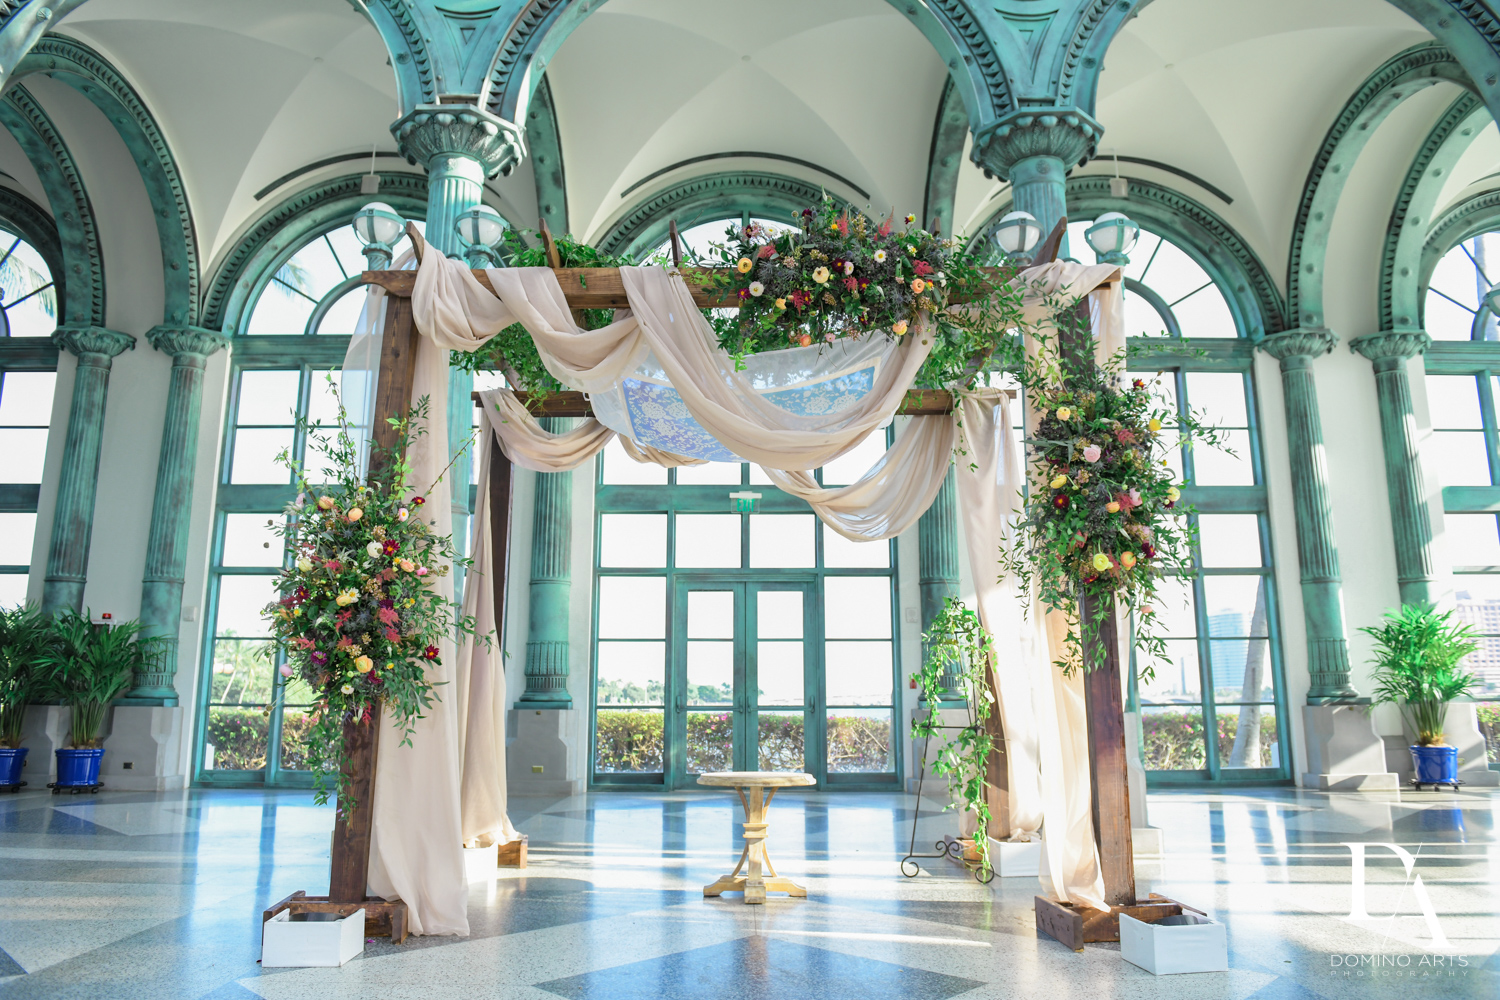 floral chuppah at Vintage Garden Wedding at Flagler Museum Palm Beach by Domino Arts Photography